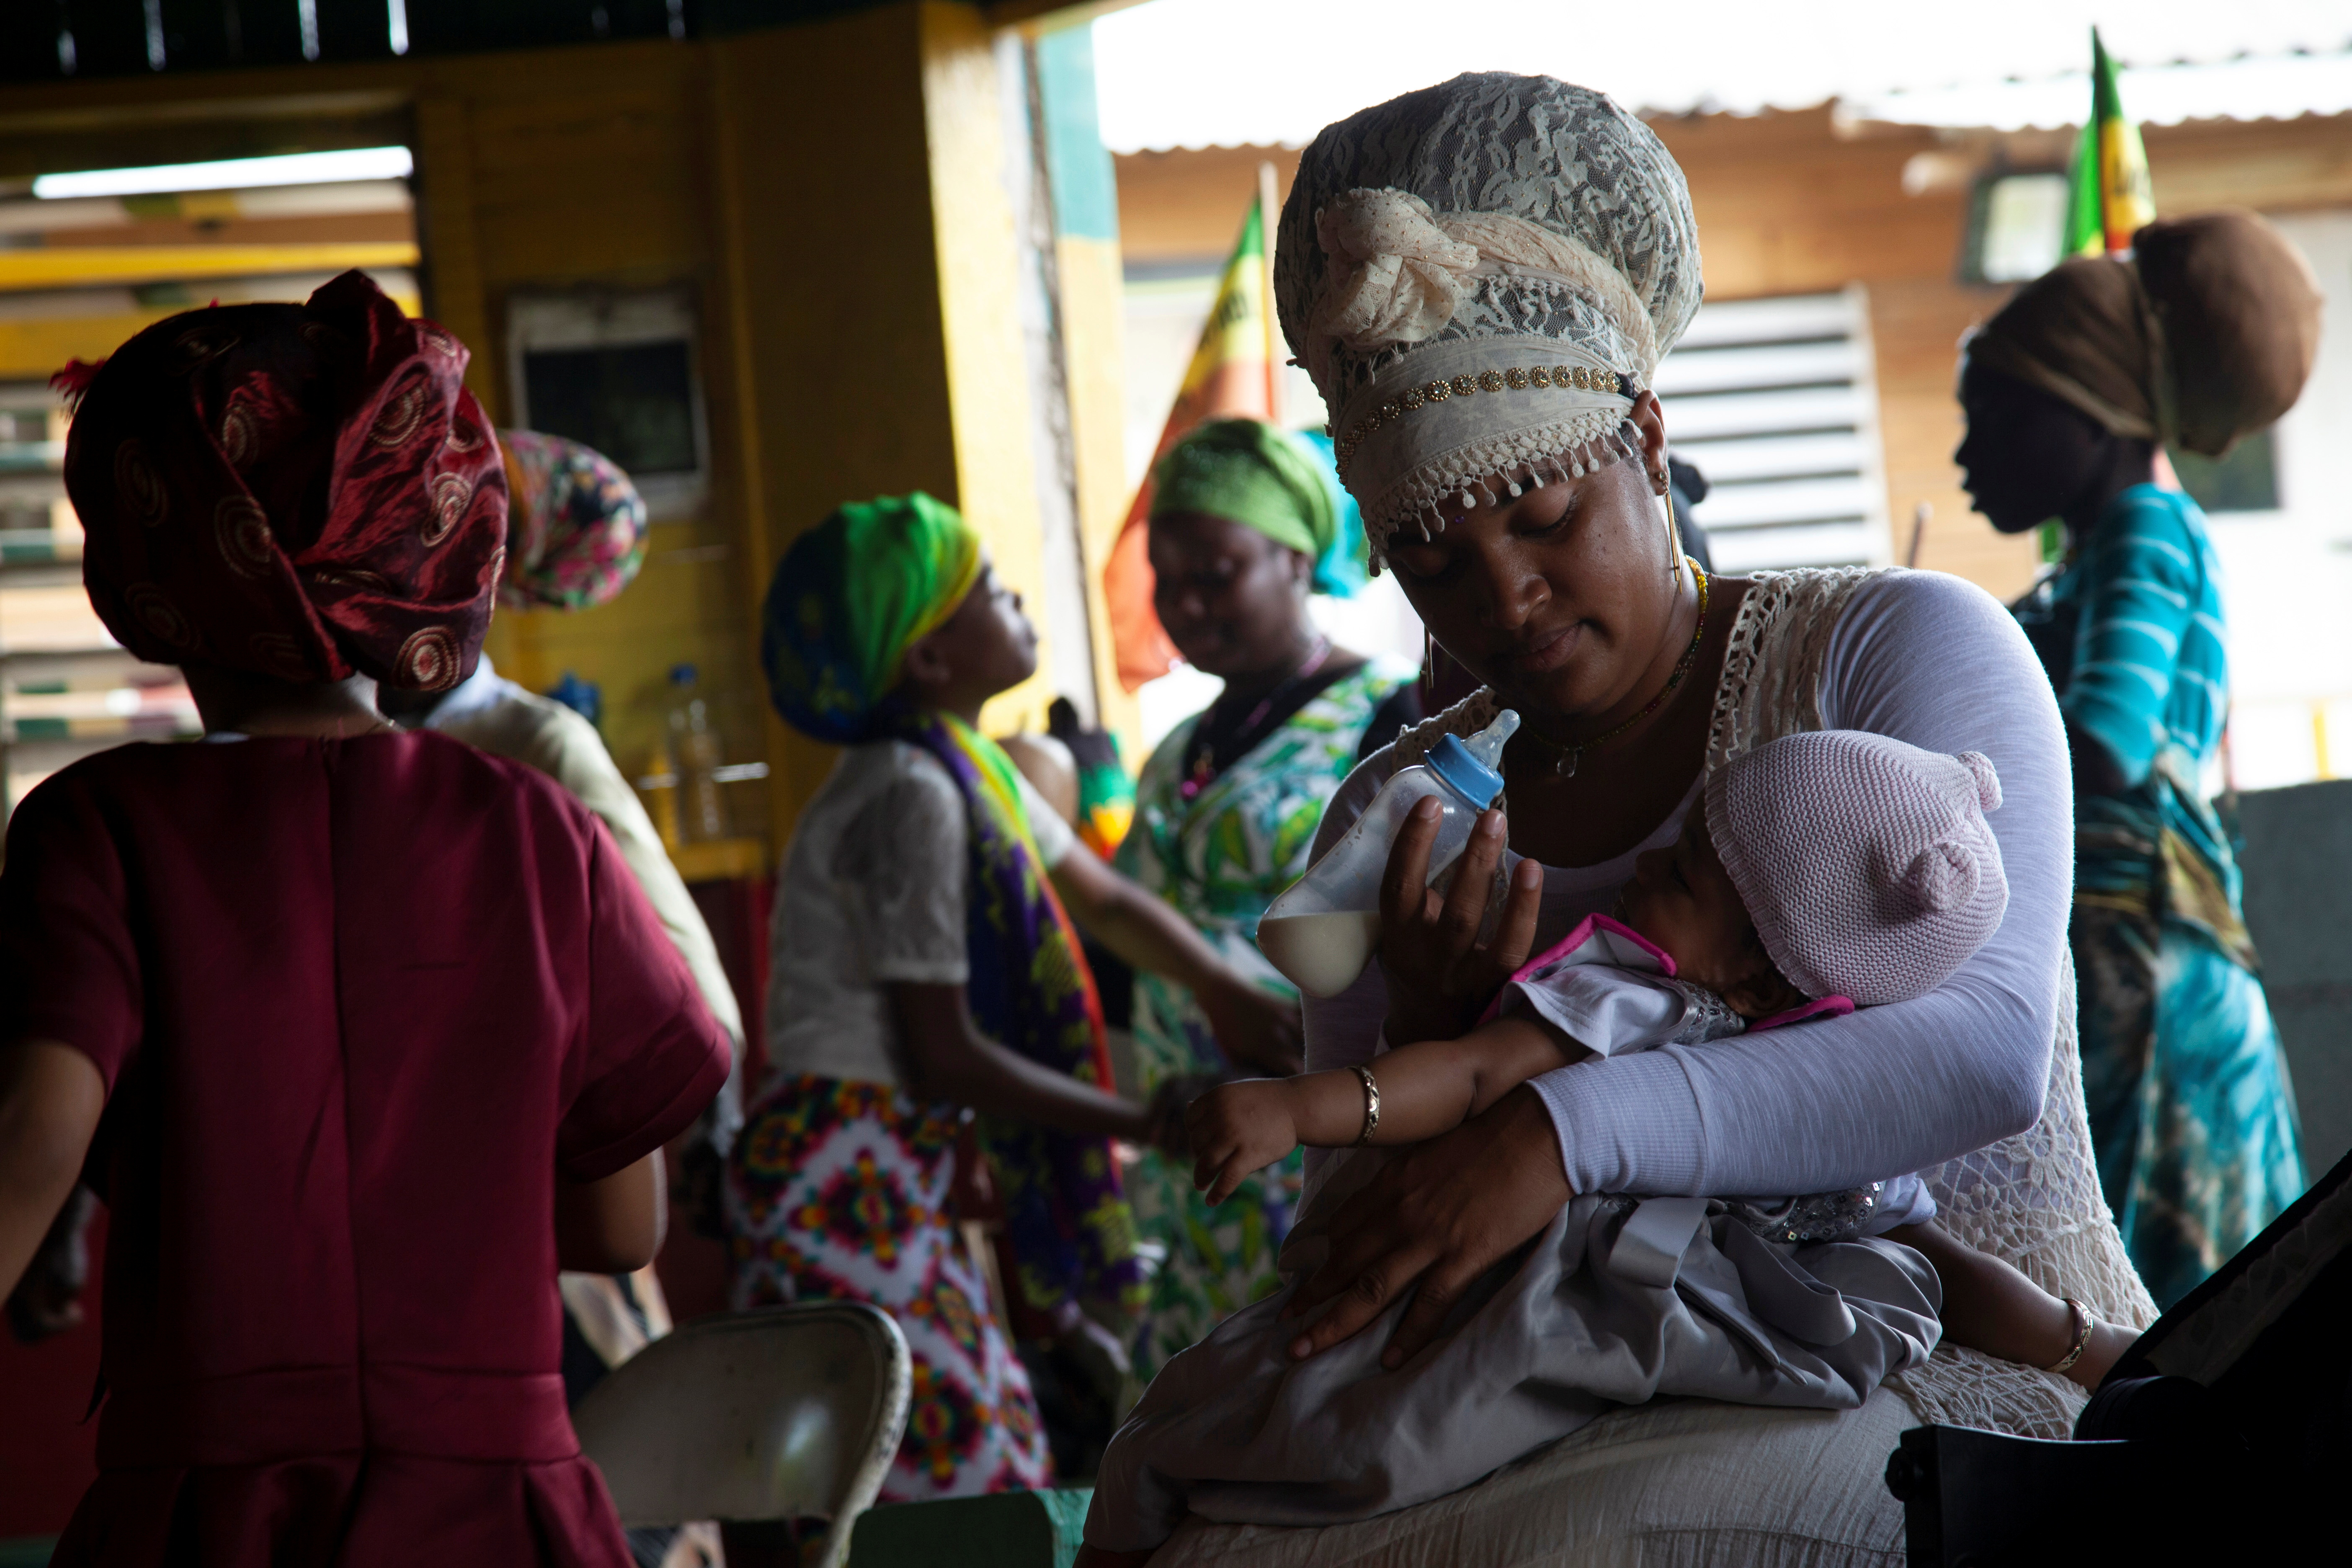 Tasheia Williams feeds her baby after the Sabbath service at the temple of The School of Vision, a Rastafari farming community in the Blue Mountains, near Kingston, Jamaica, on June 19, 2021. REUTERS/Ina Sotirova